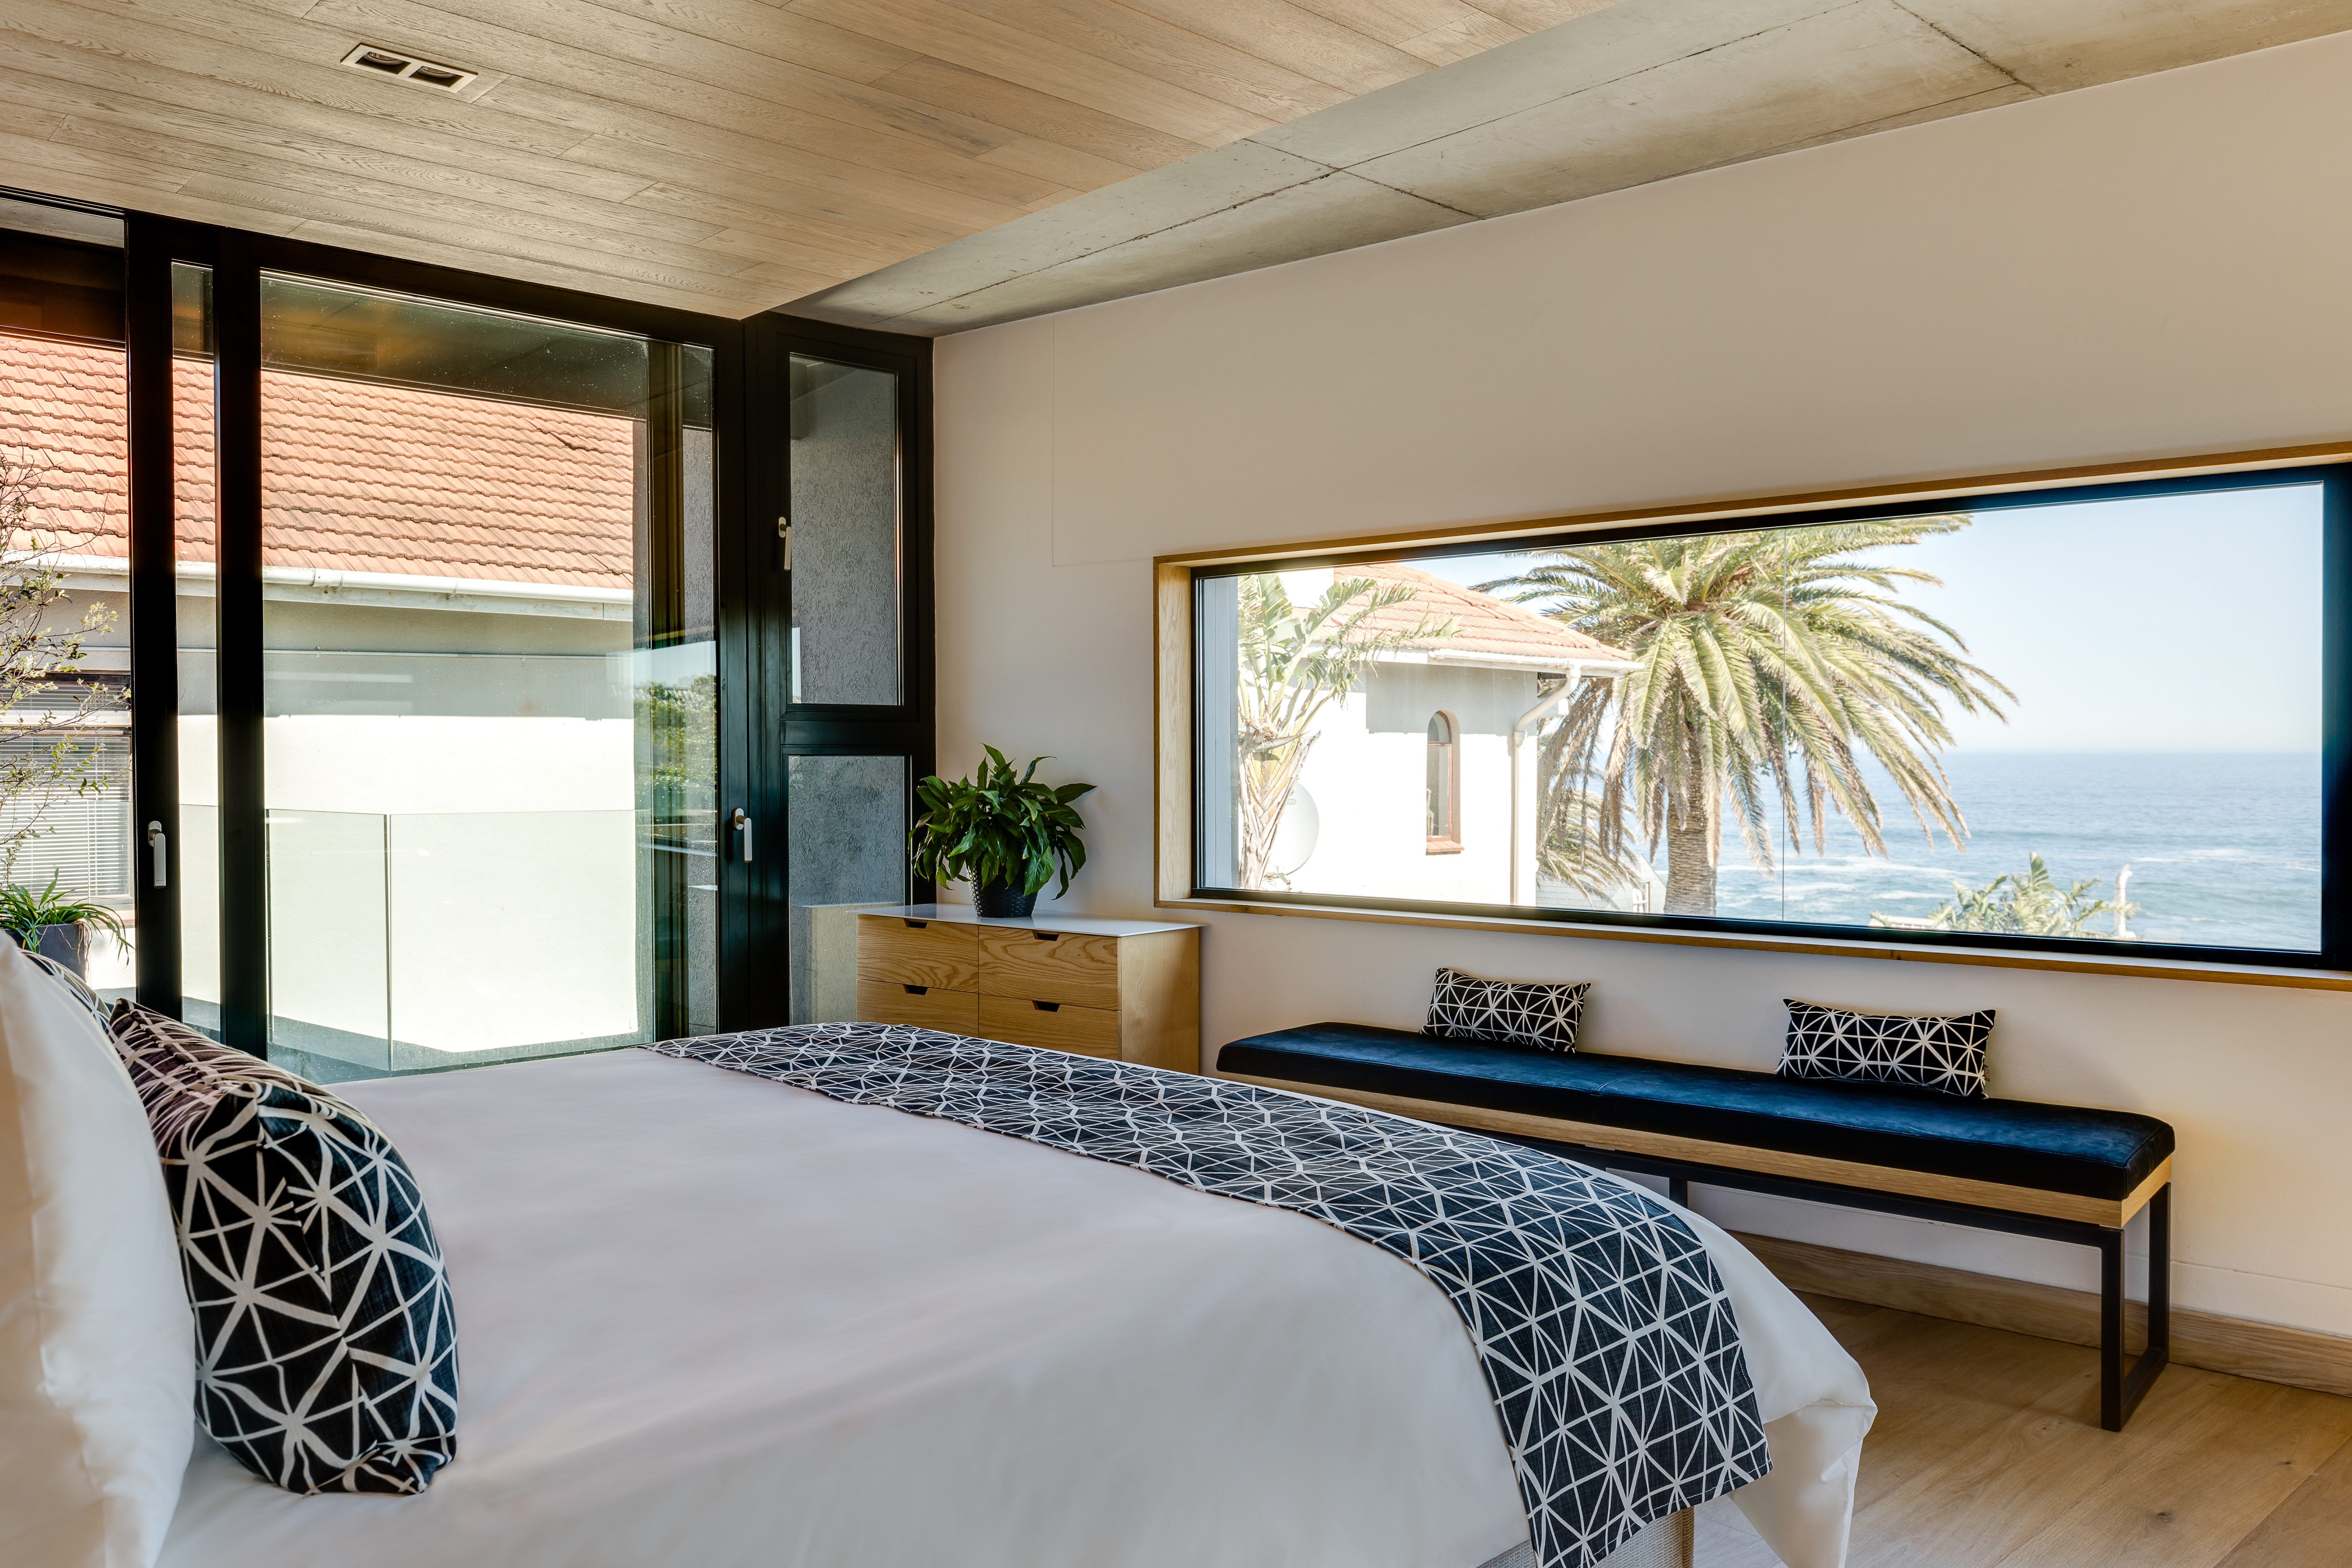 Seasky Villa Management 54 Victoria Hamish Niven Photography Bedroom 1 To The View